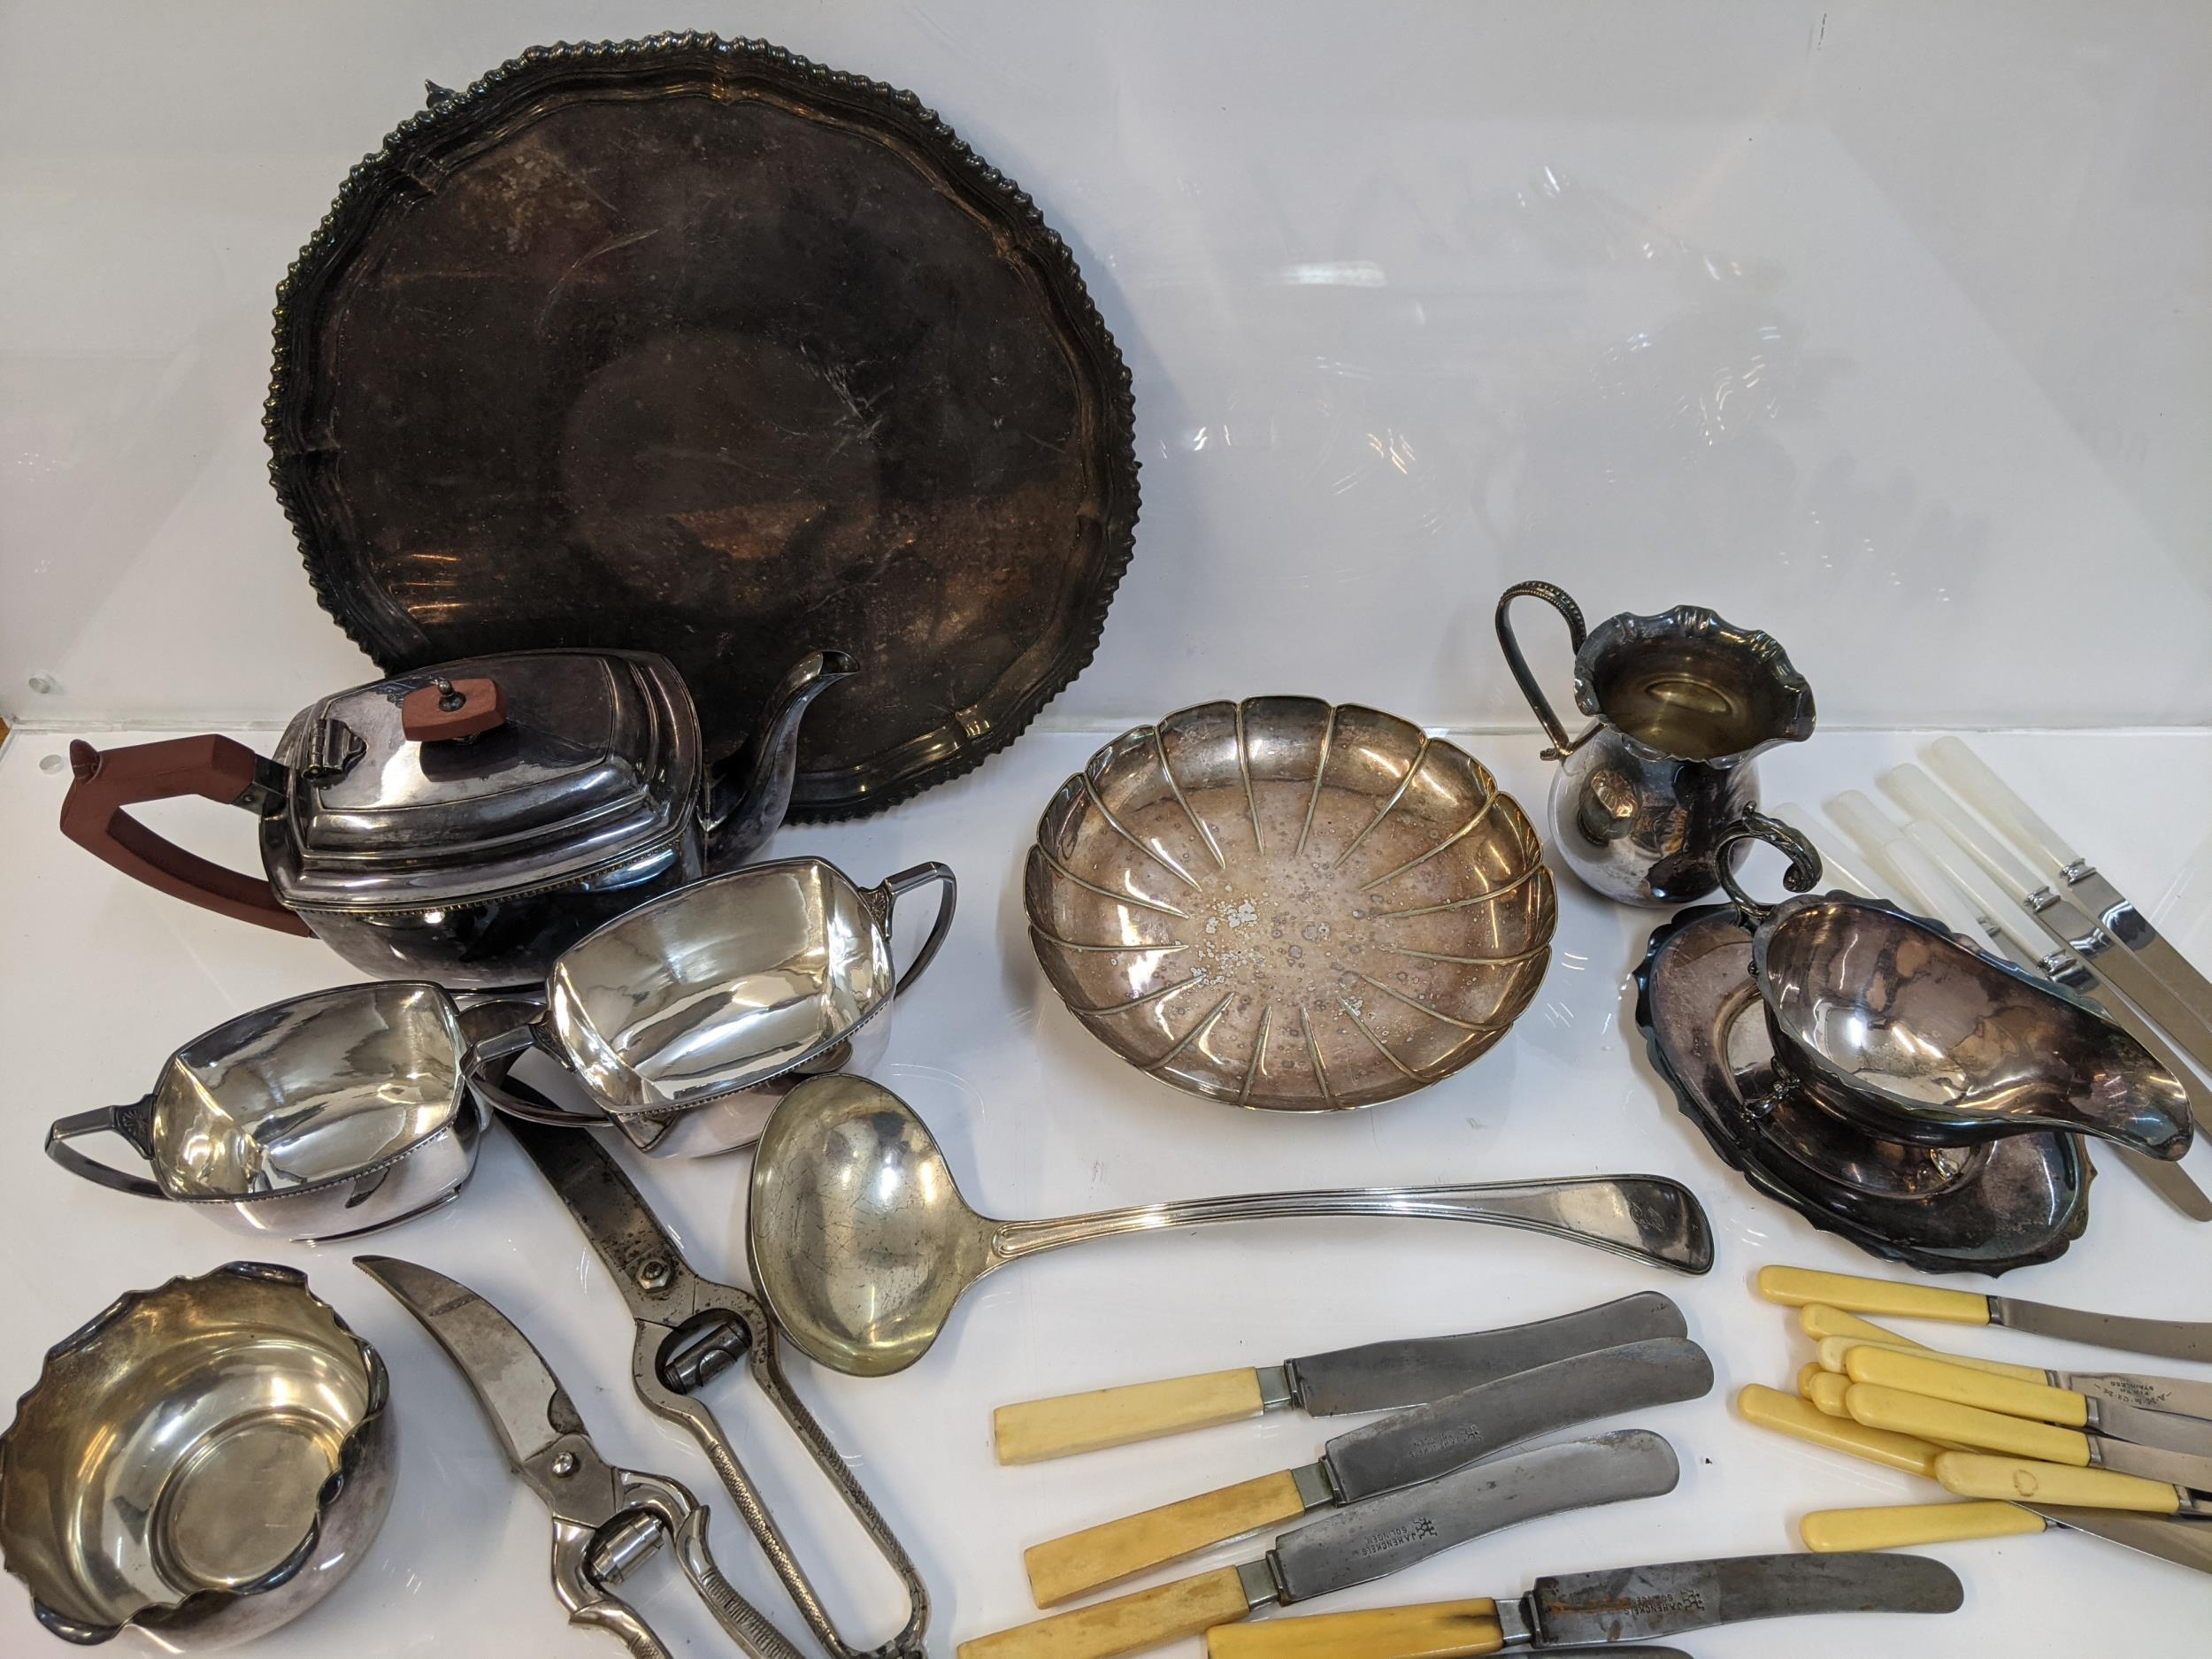 Silver plate to include a three piece tea set, sauce boats, flatware, knives and other items - Image 2 of 3